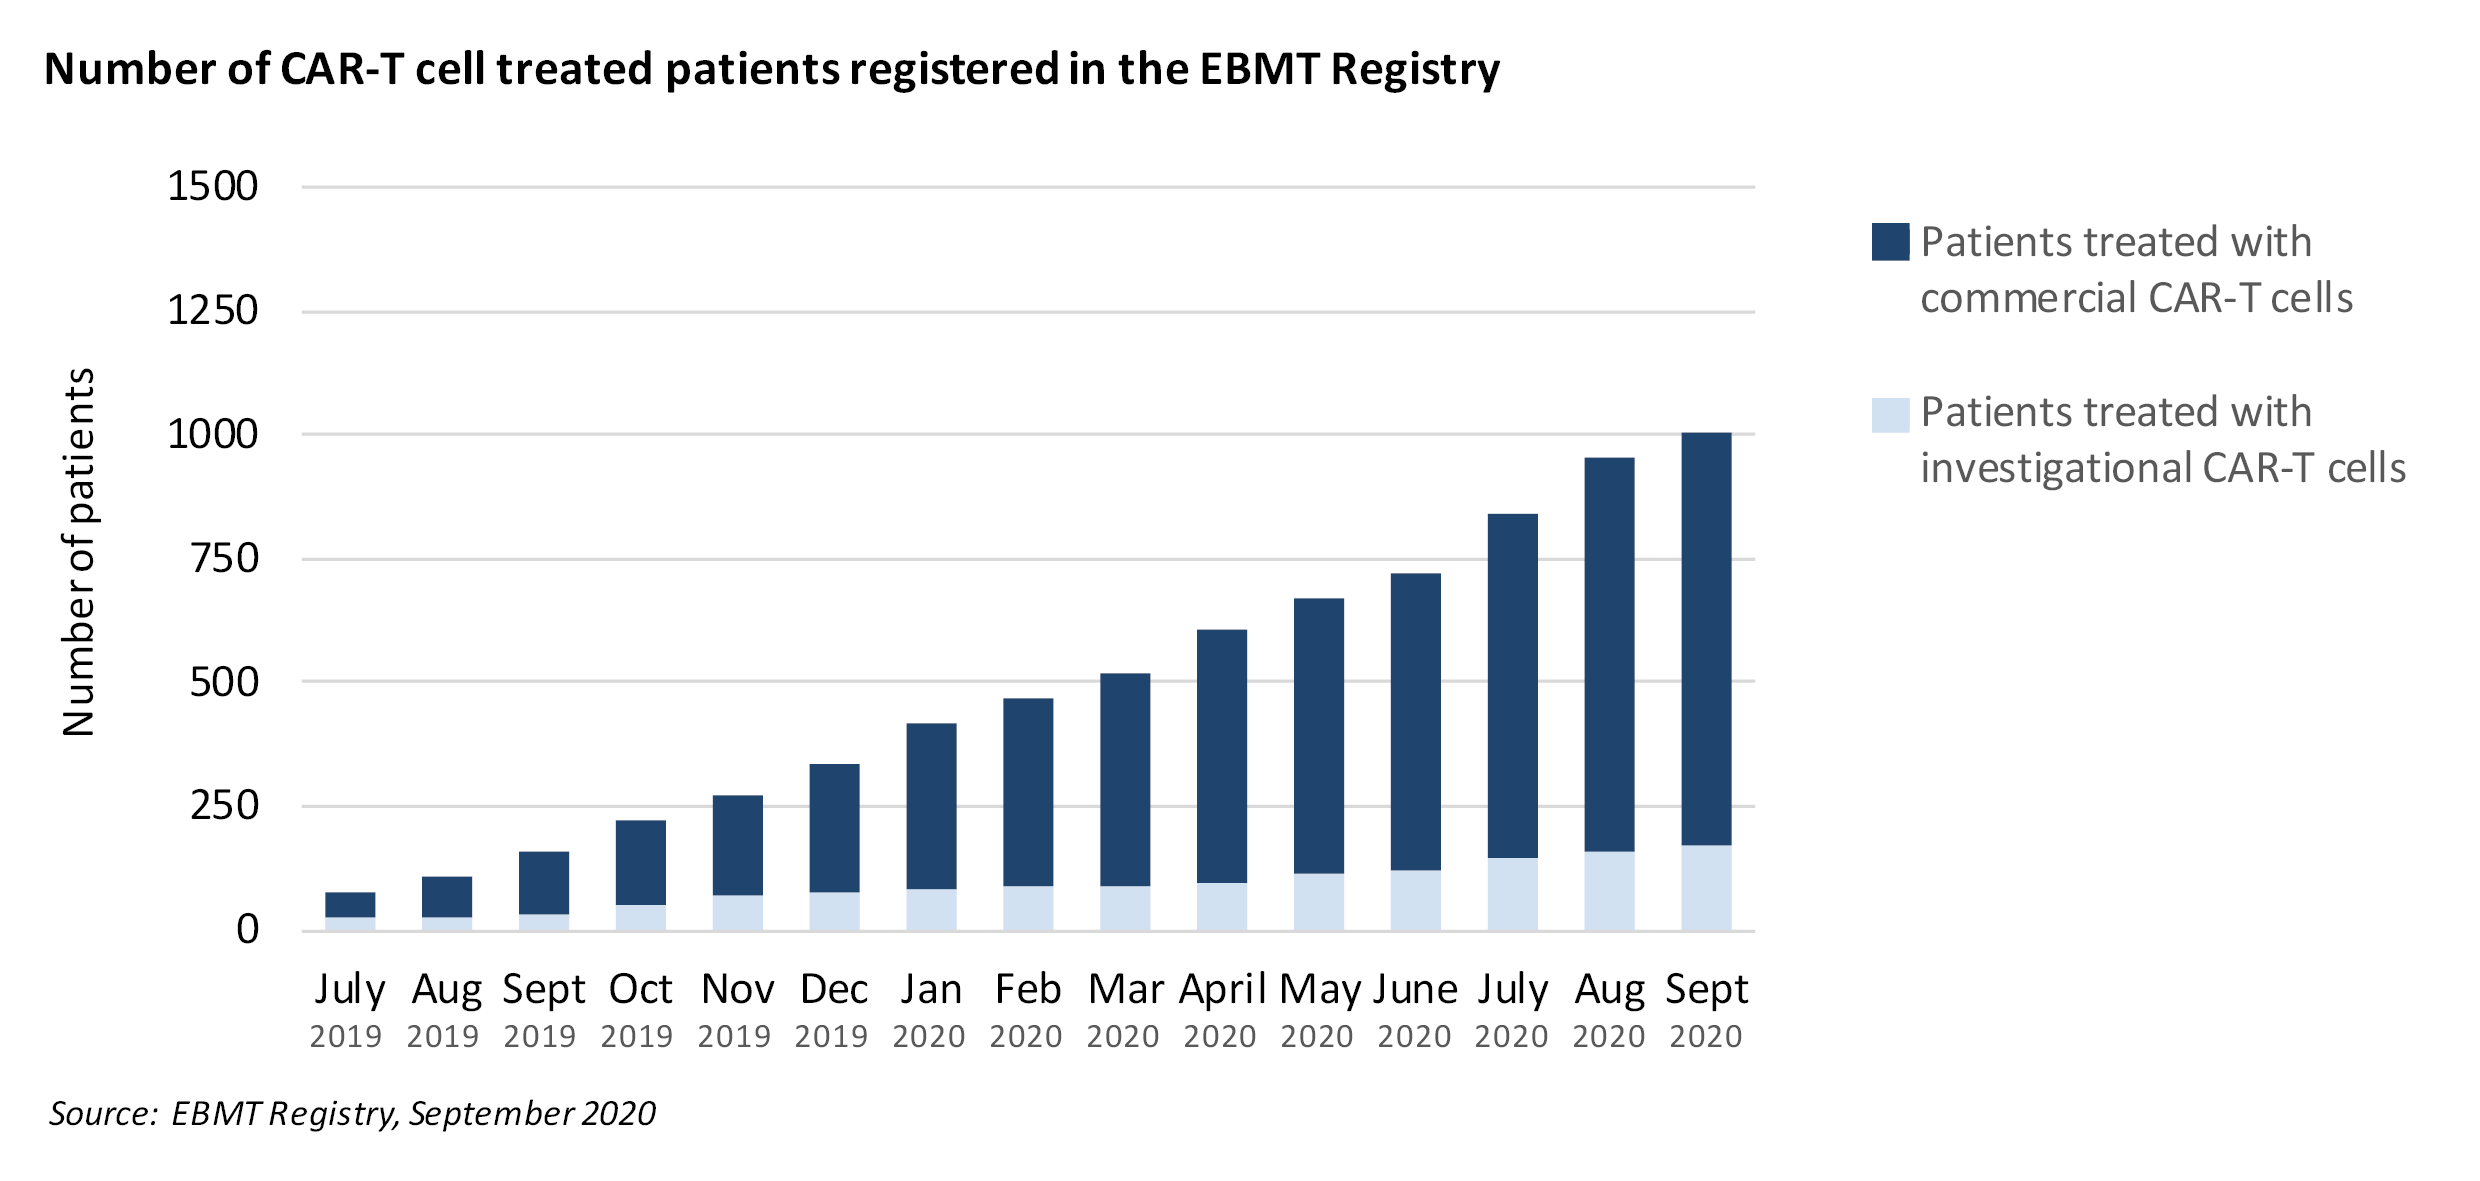 Number of CAR-T cell treated patients registered in the EBMT registry September 2020